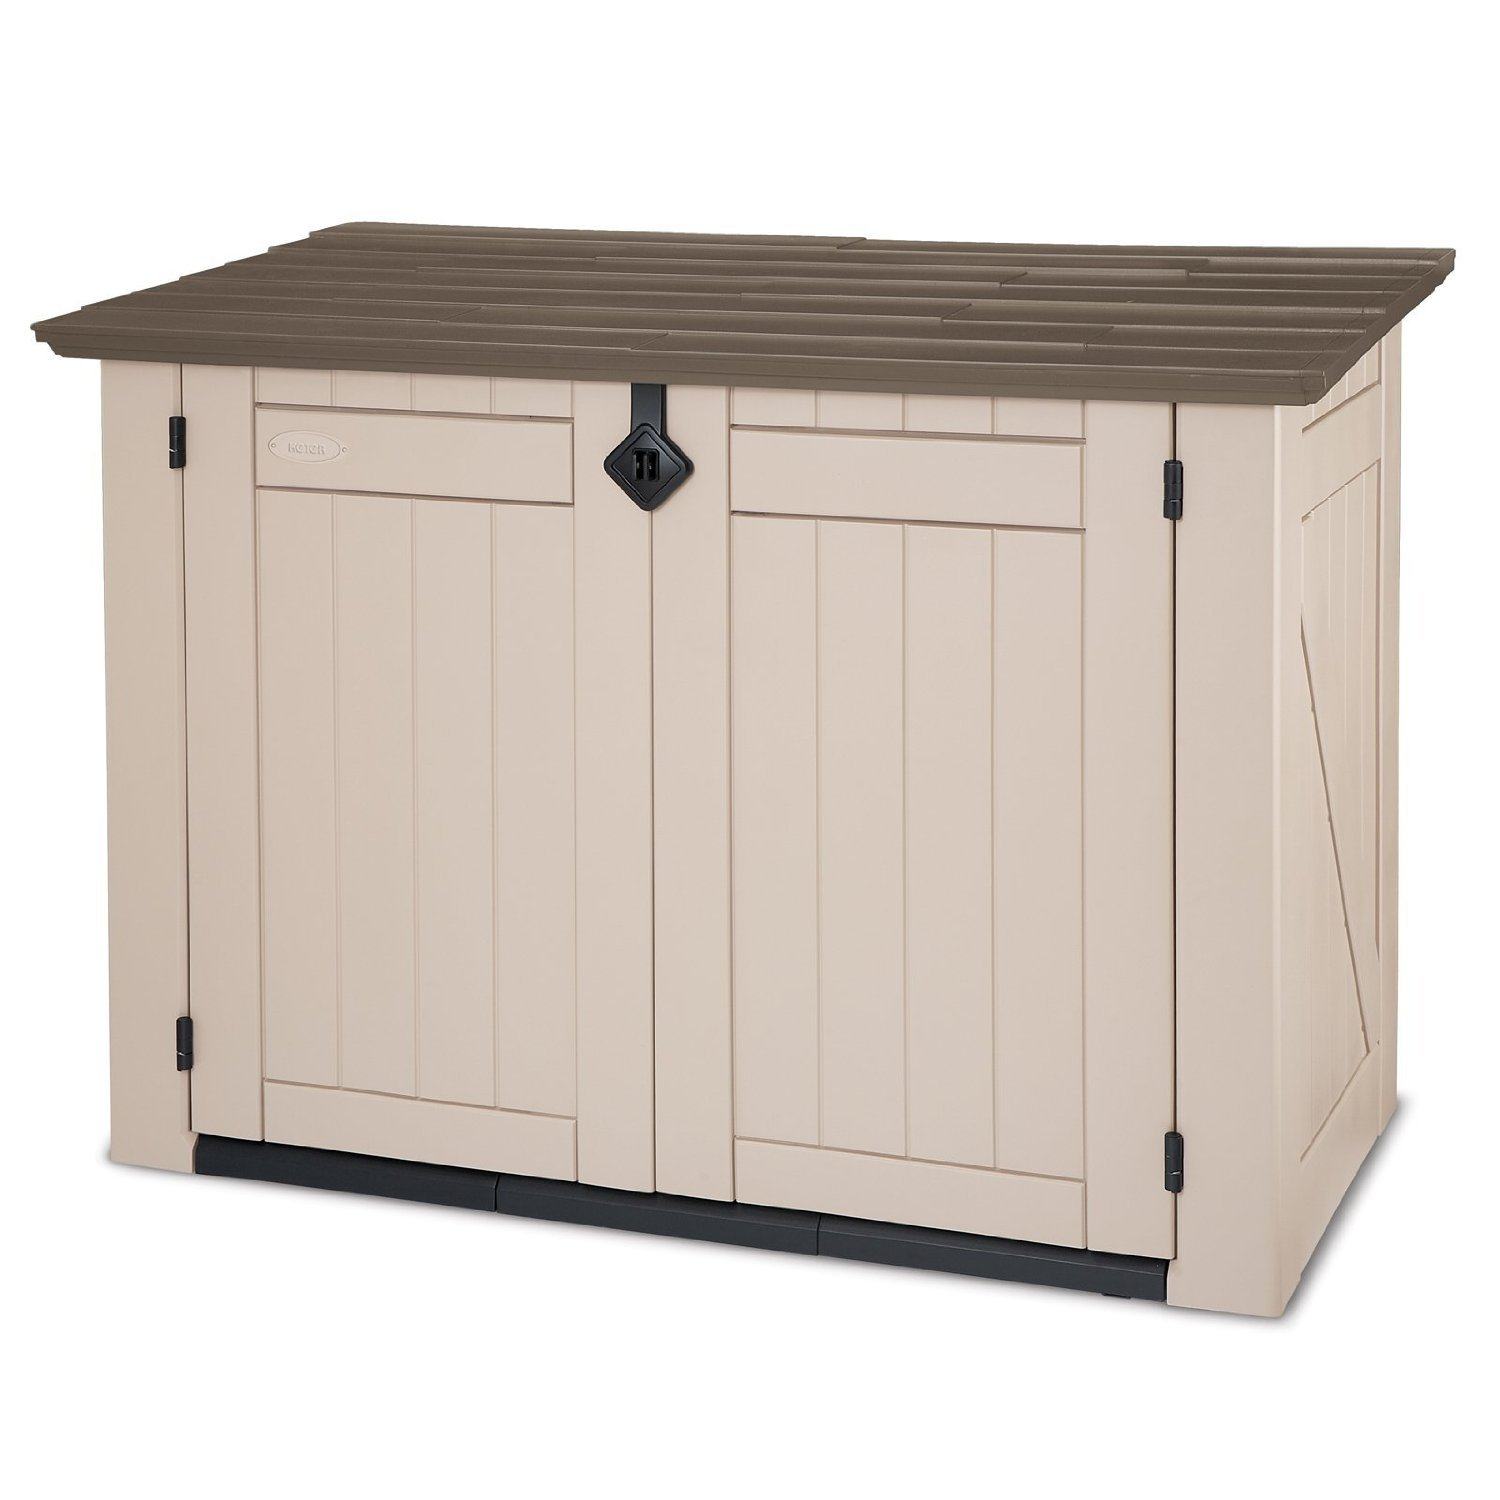 new keter xl store it out garden storage unit shade patio box outdoor